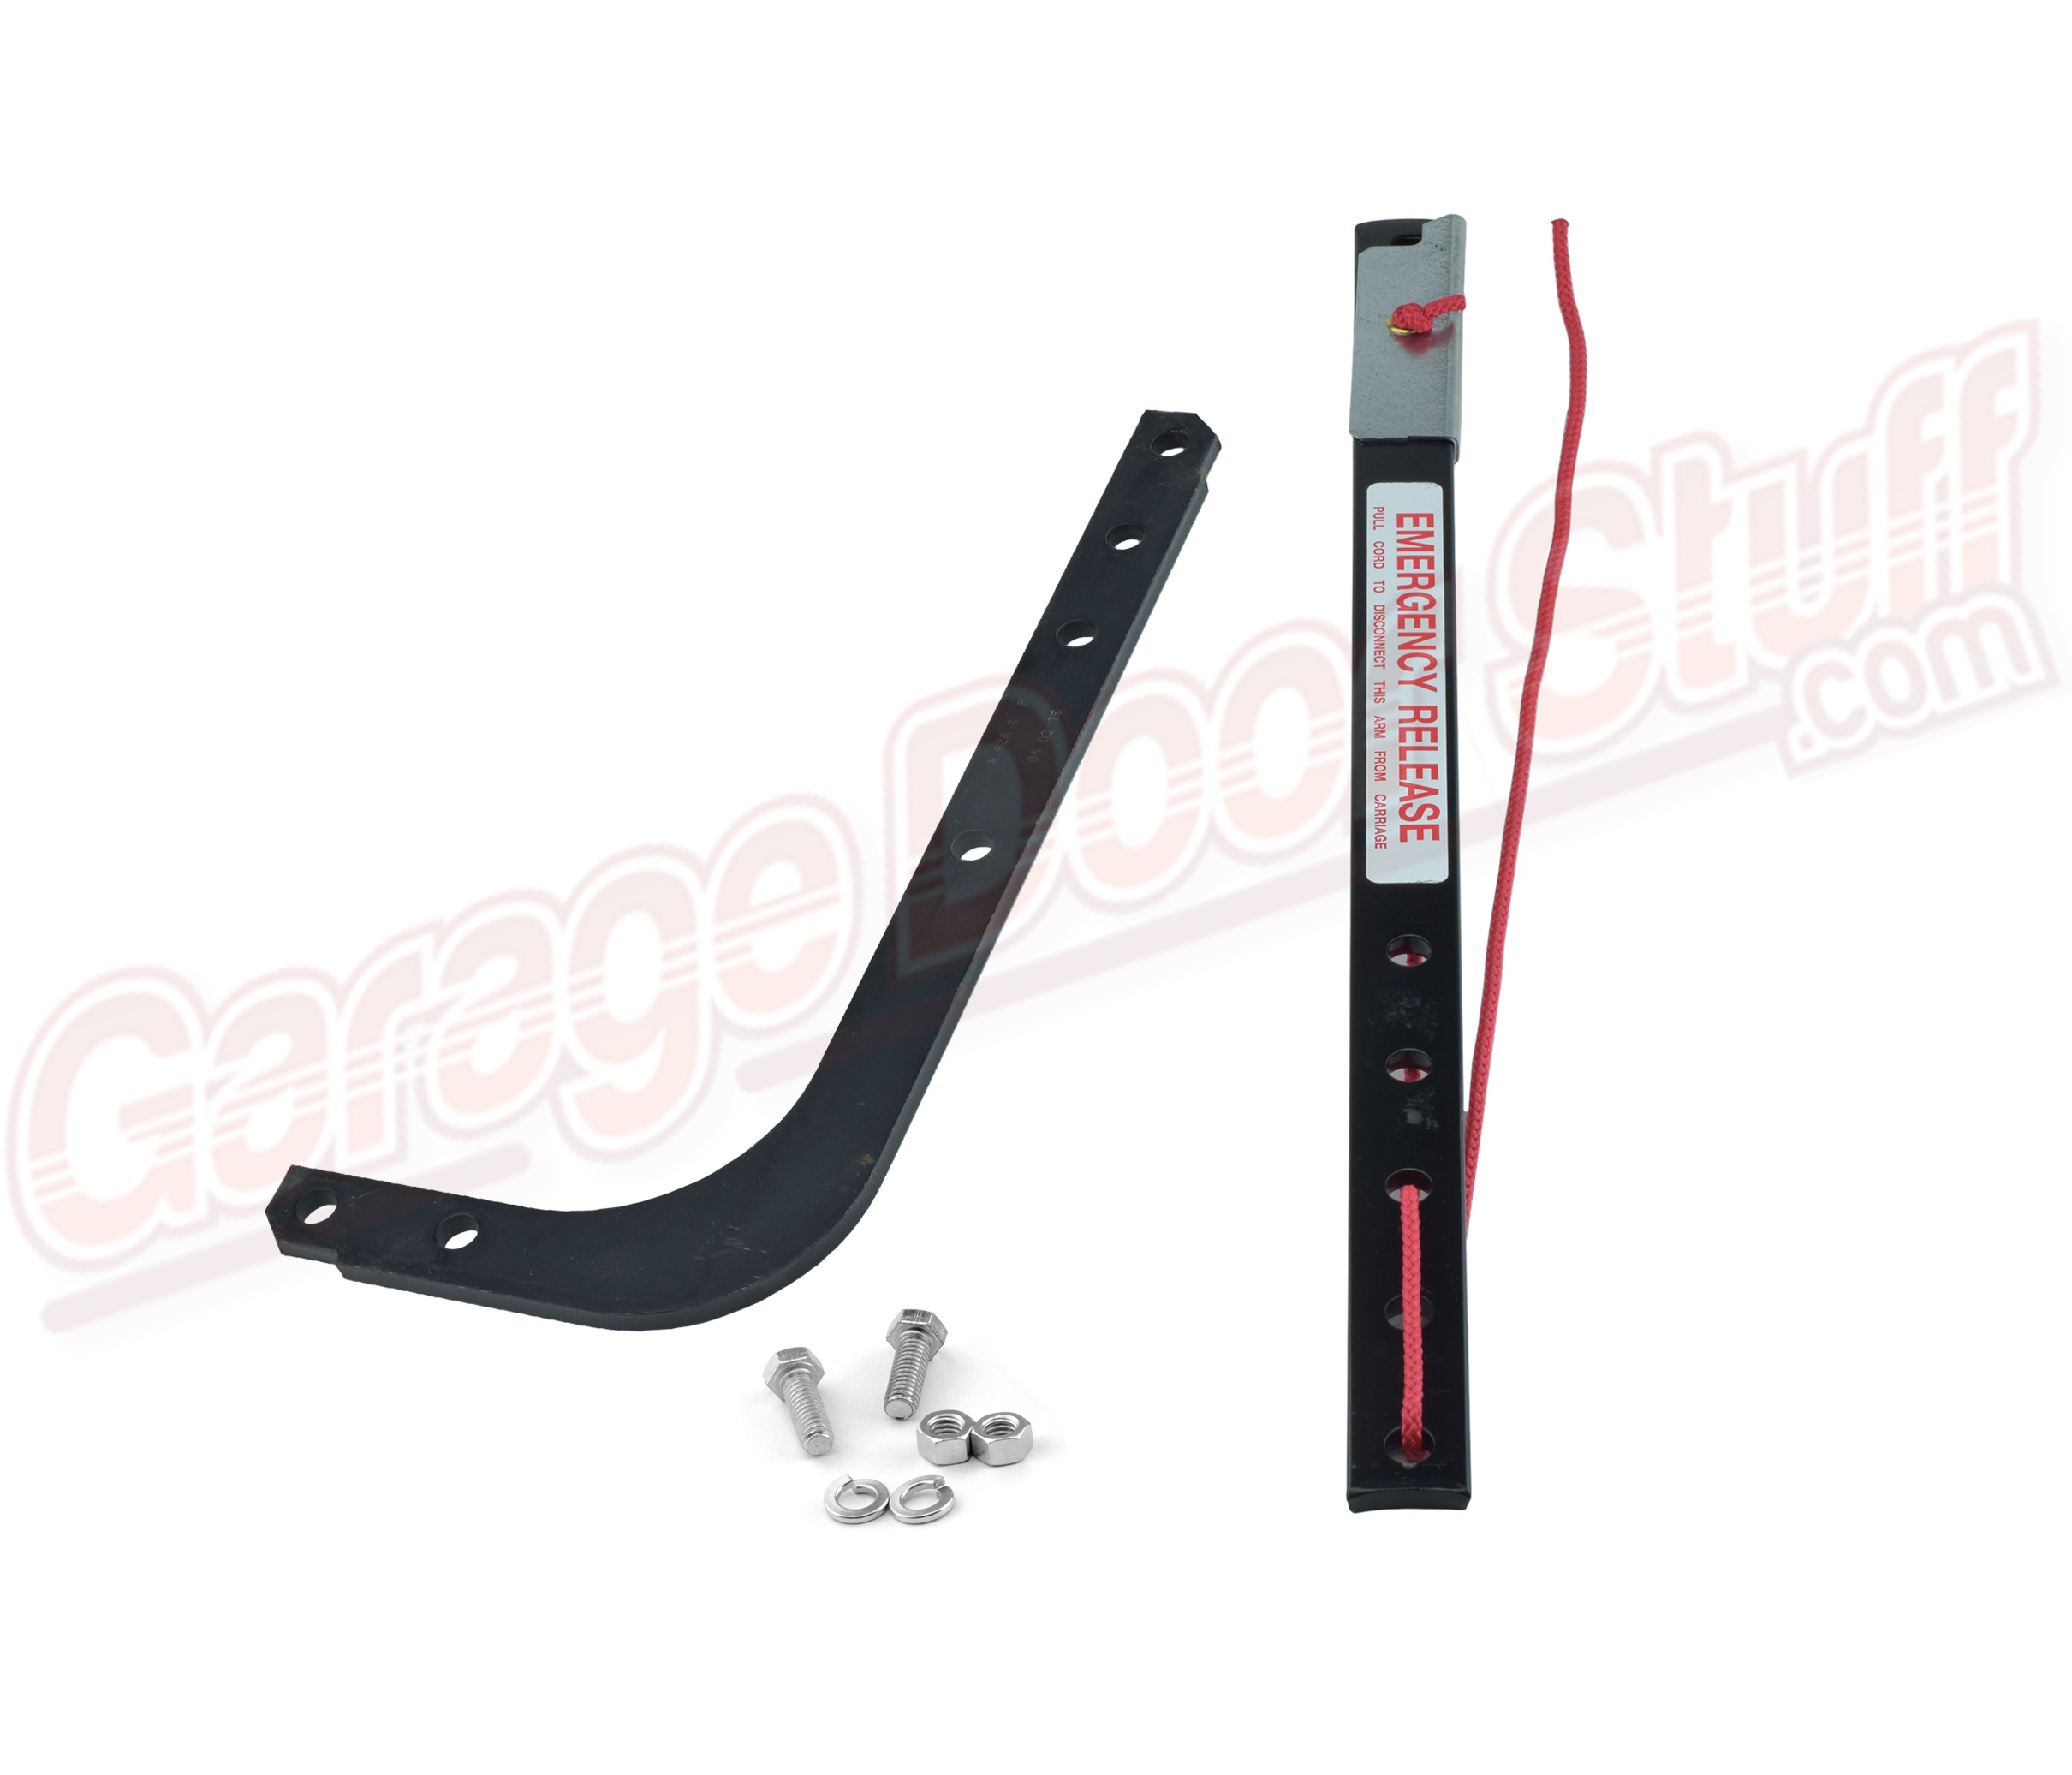 Garage Door Arm : Garage door opener arm